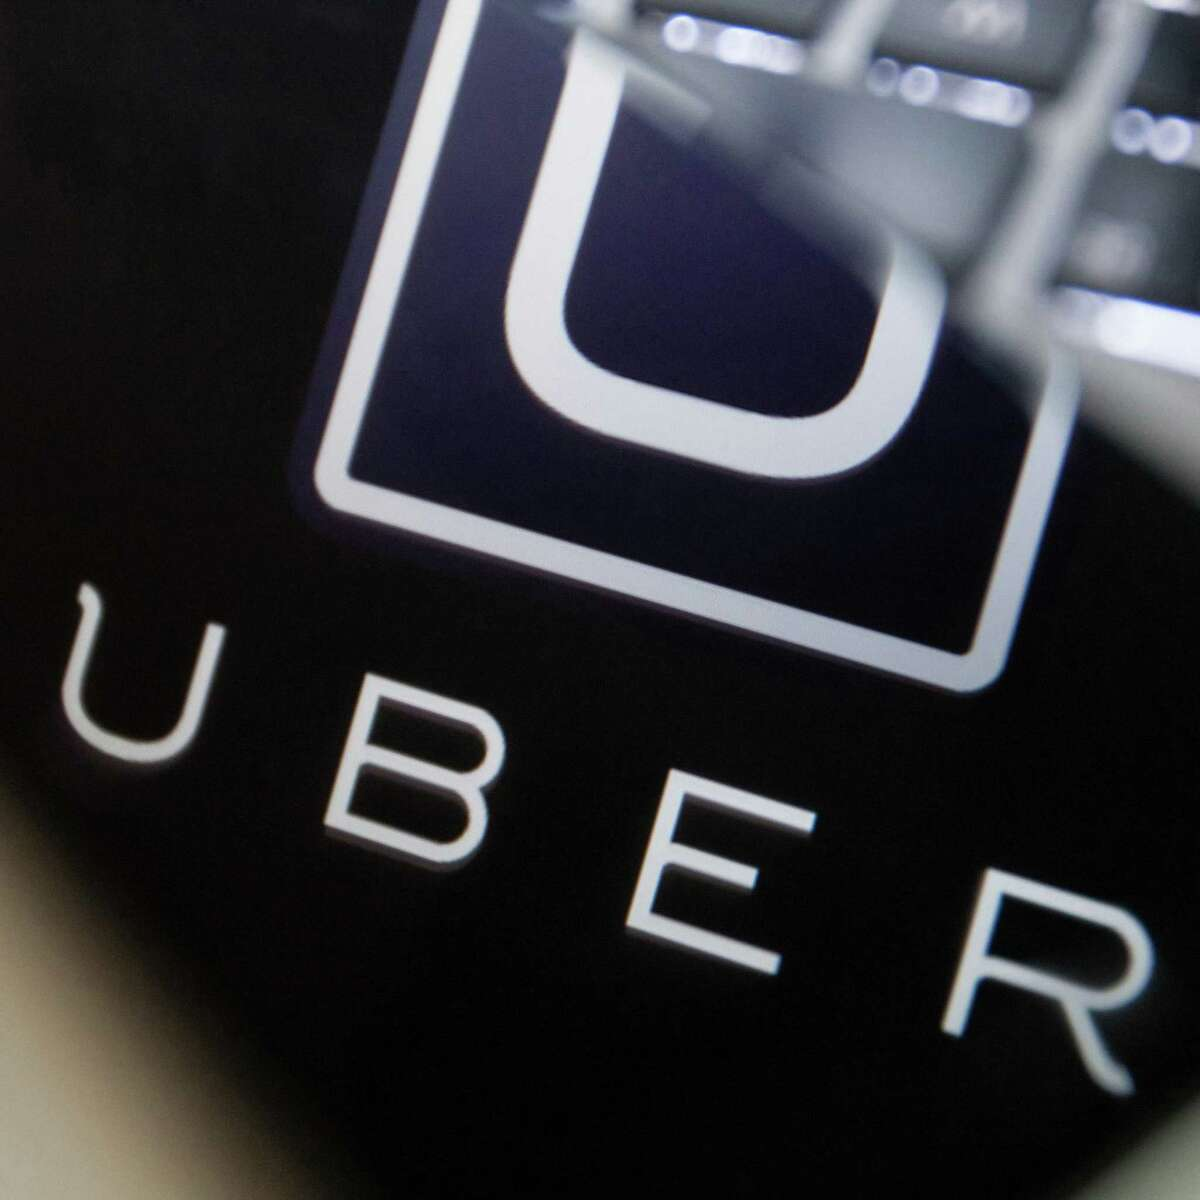 Connecticut residents will pay an extra fee to take an Uber ride if a budget before the General Assembly is adopted..